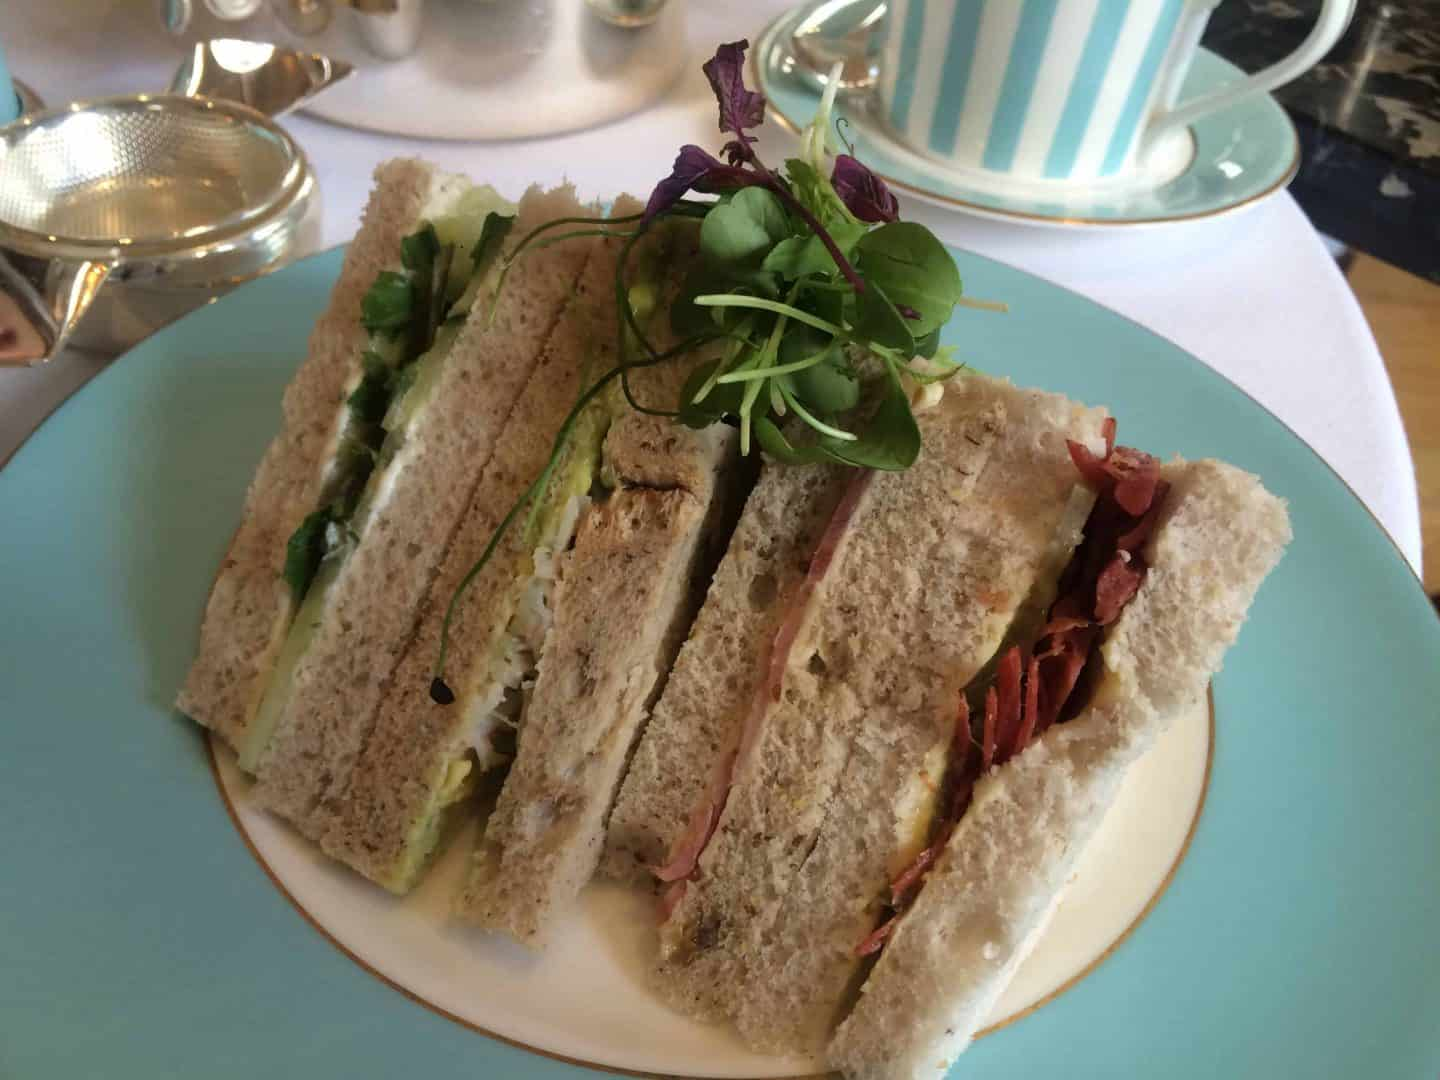 Eating Out: Gluten free afternoon tea at The Kensington, London